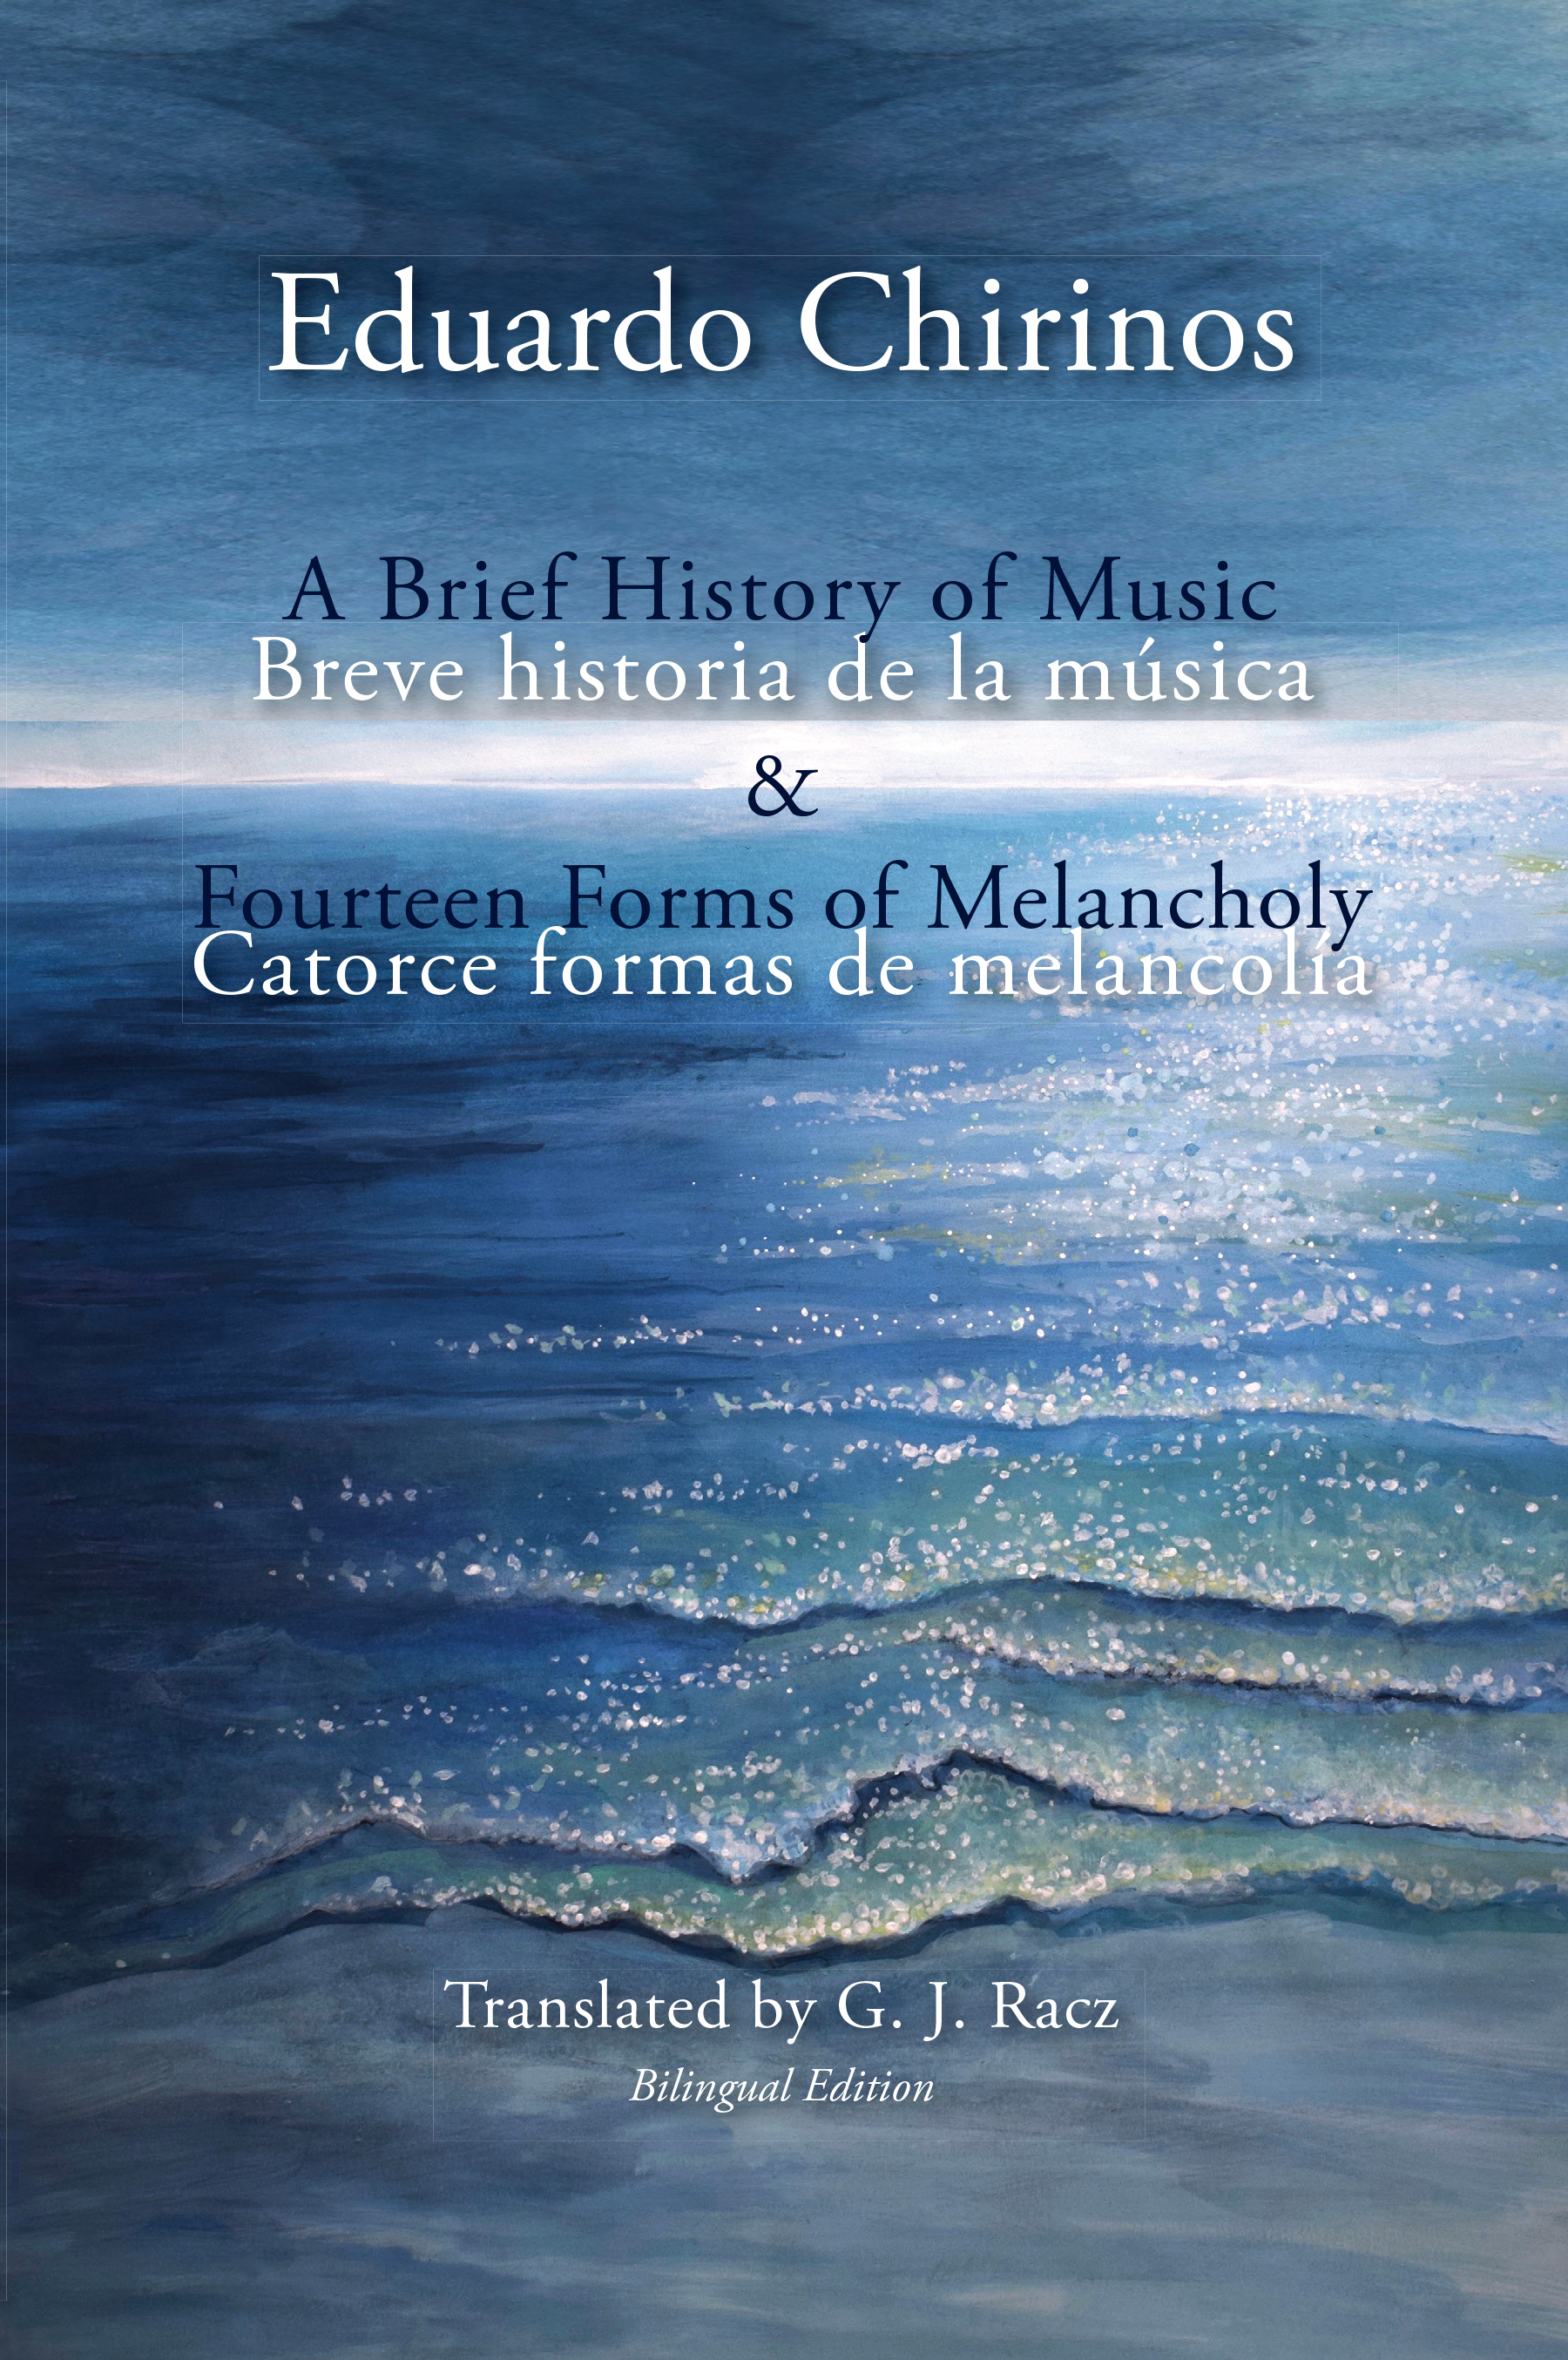 A Brief History of Music & Fourteen Forms of Melancholy